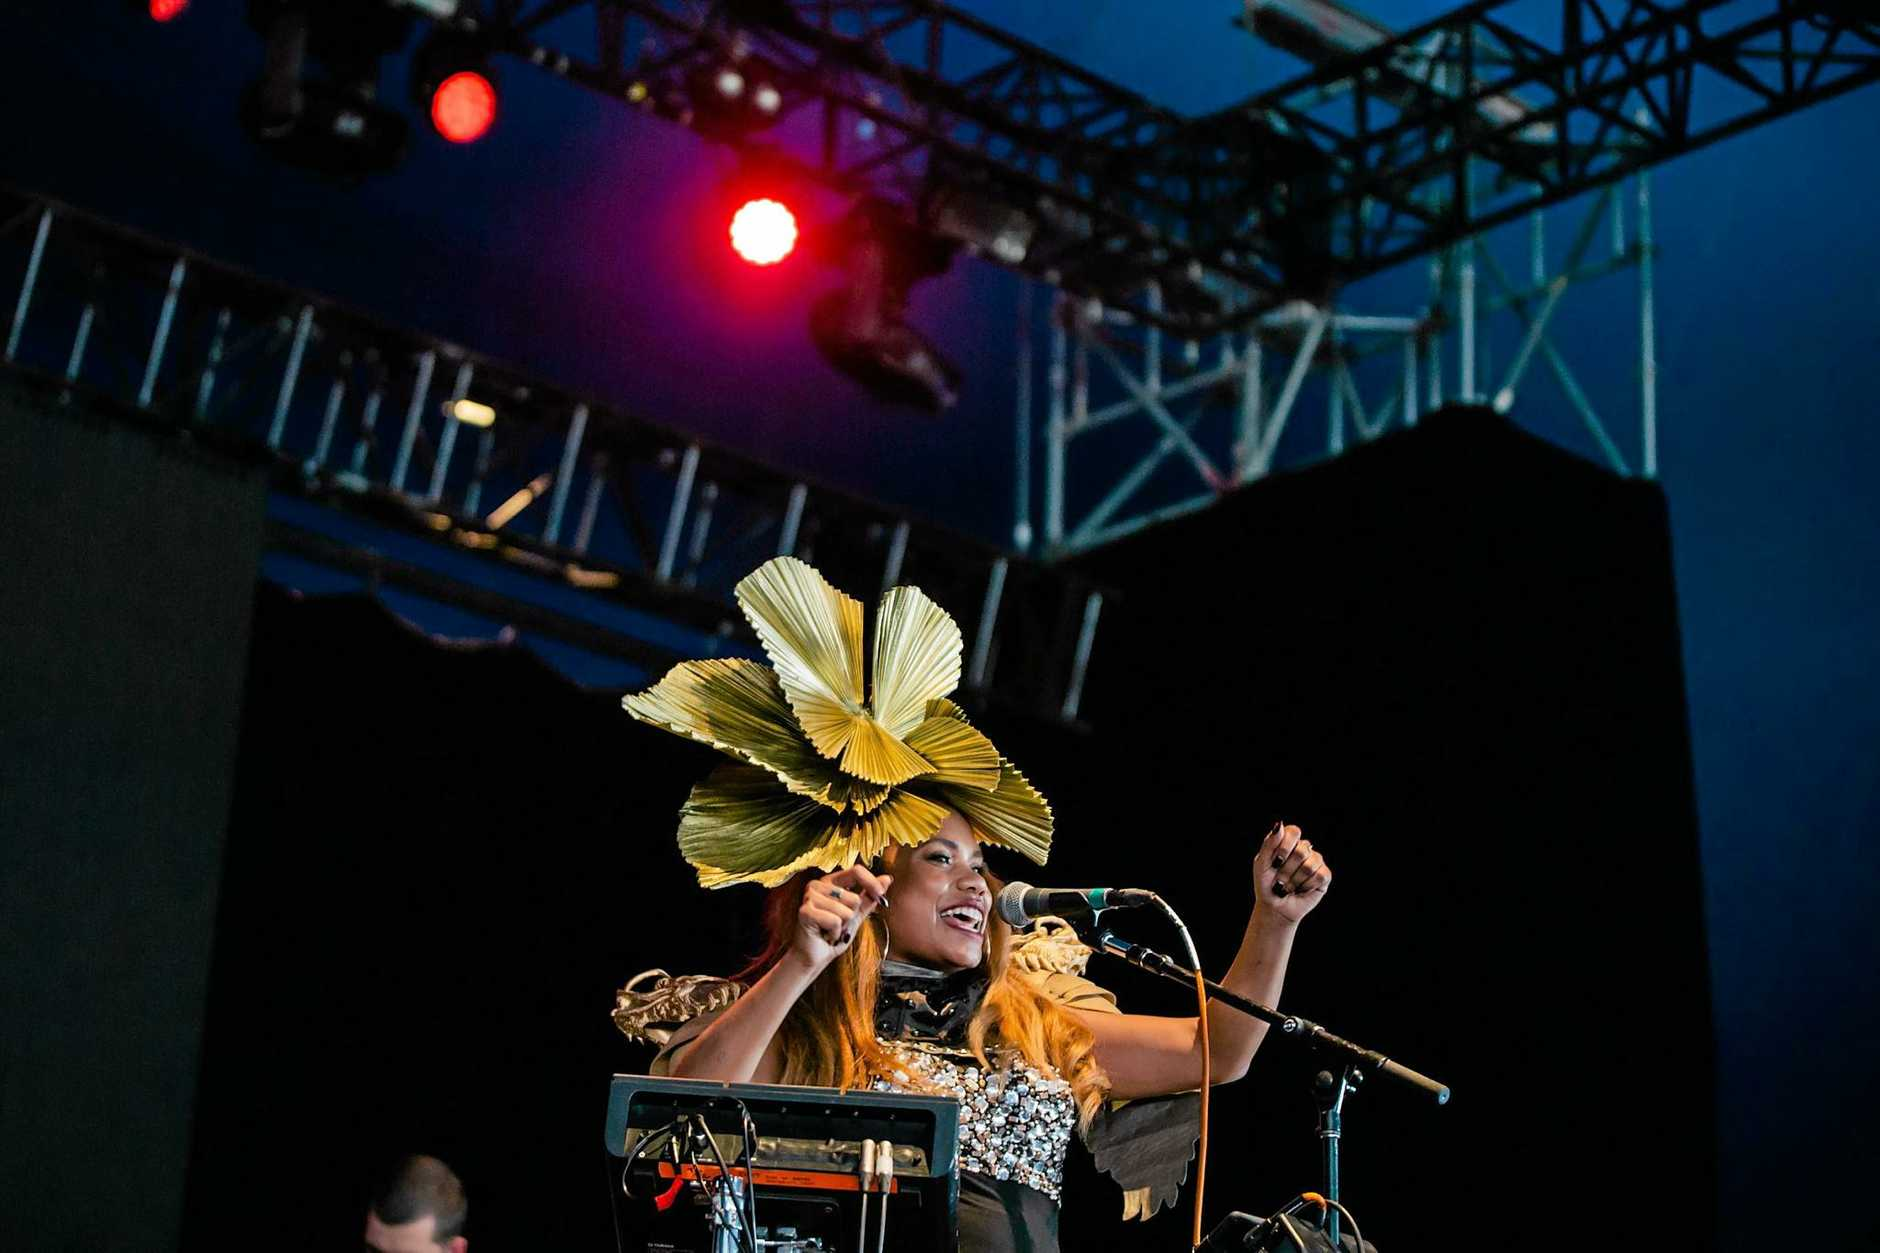 Former Lismore resident Ngaiire during her show at Splendour in the Grass 2016.